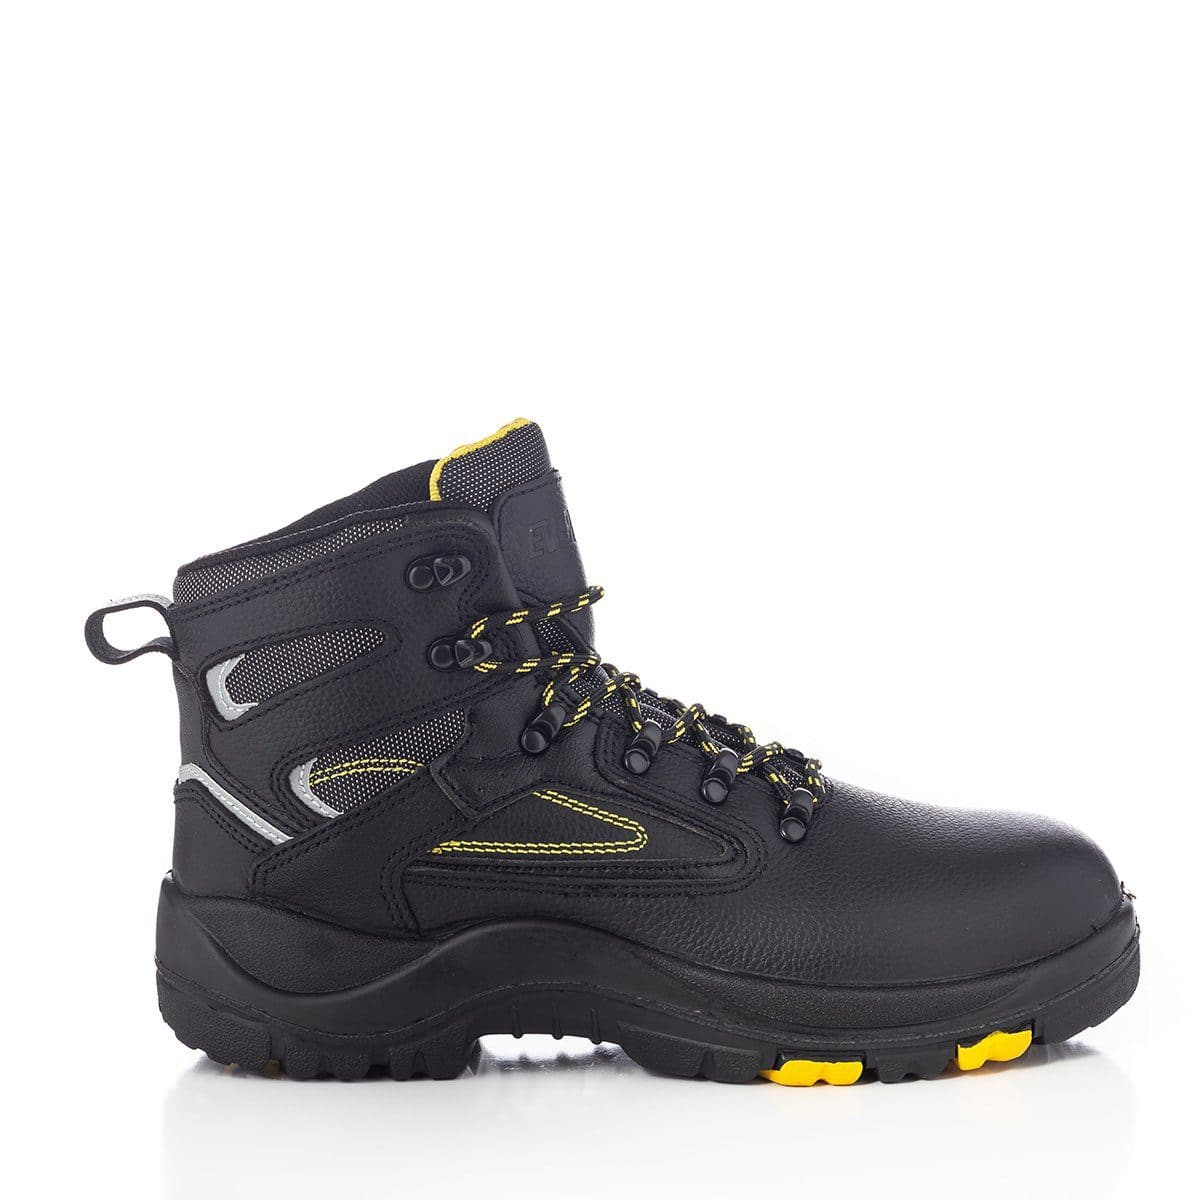 'PROTECTOR' Steel Toe 6' Work Boot Black